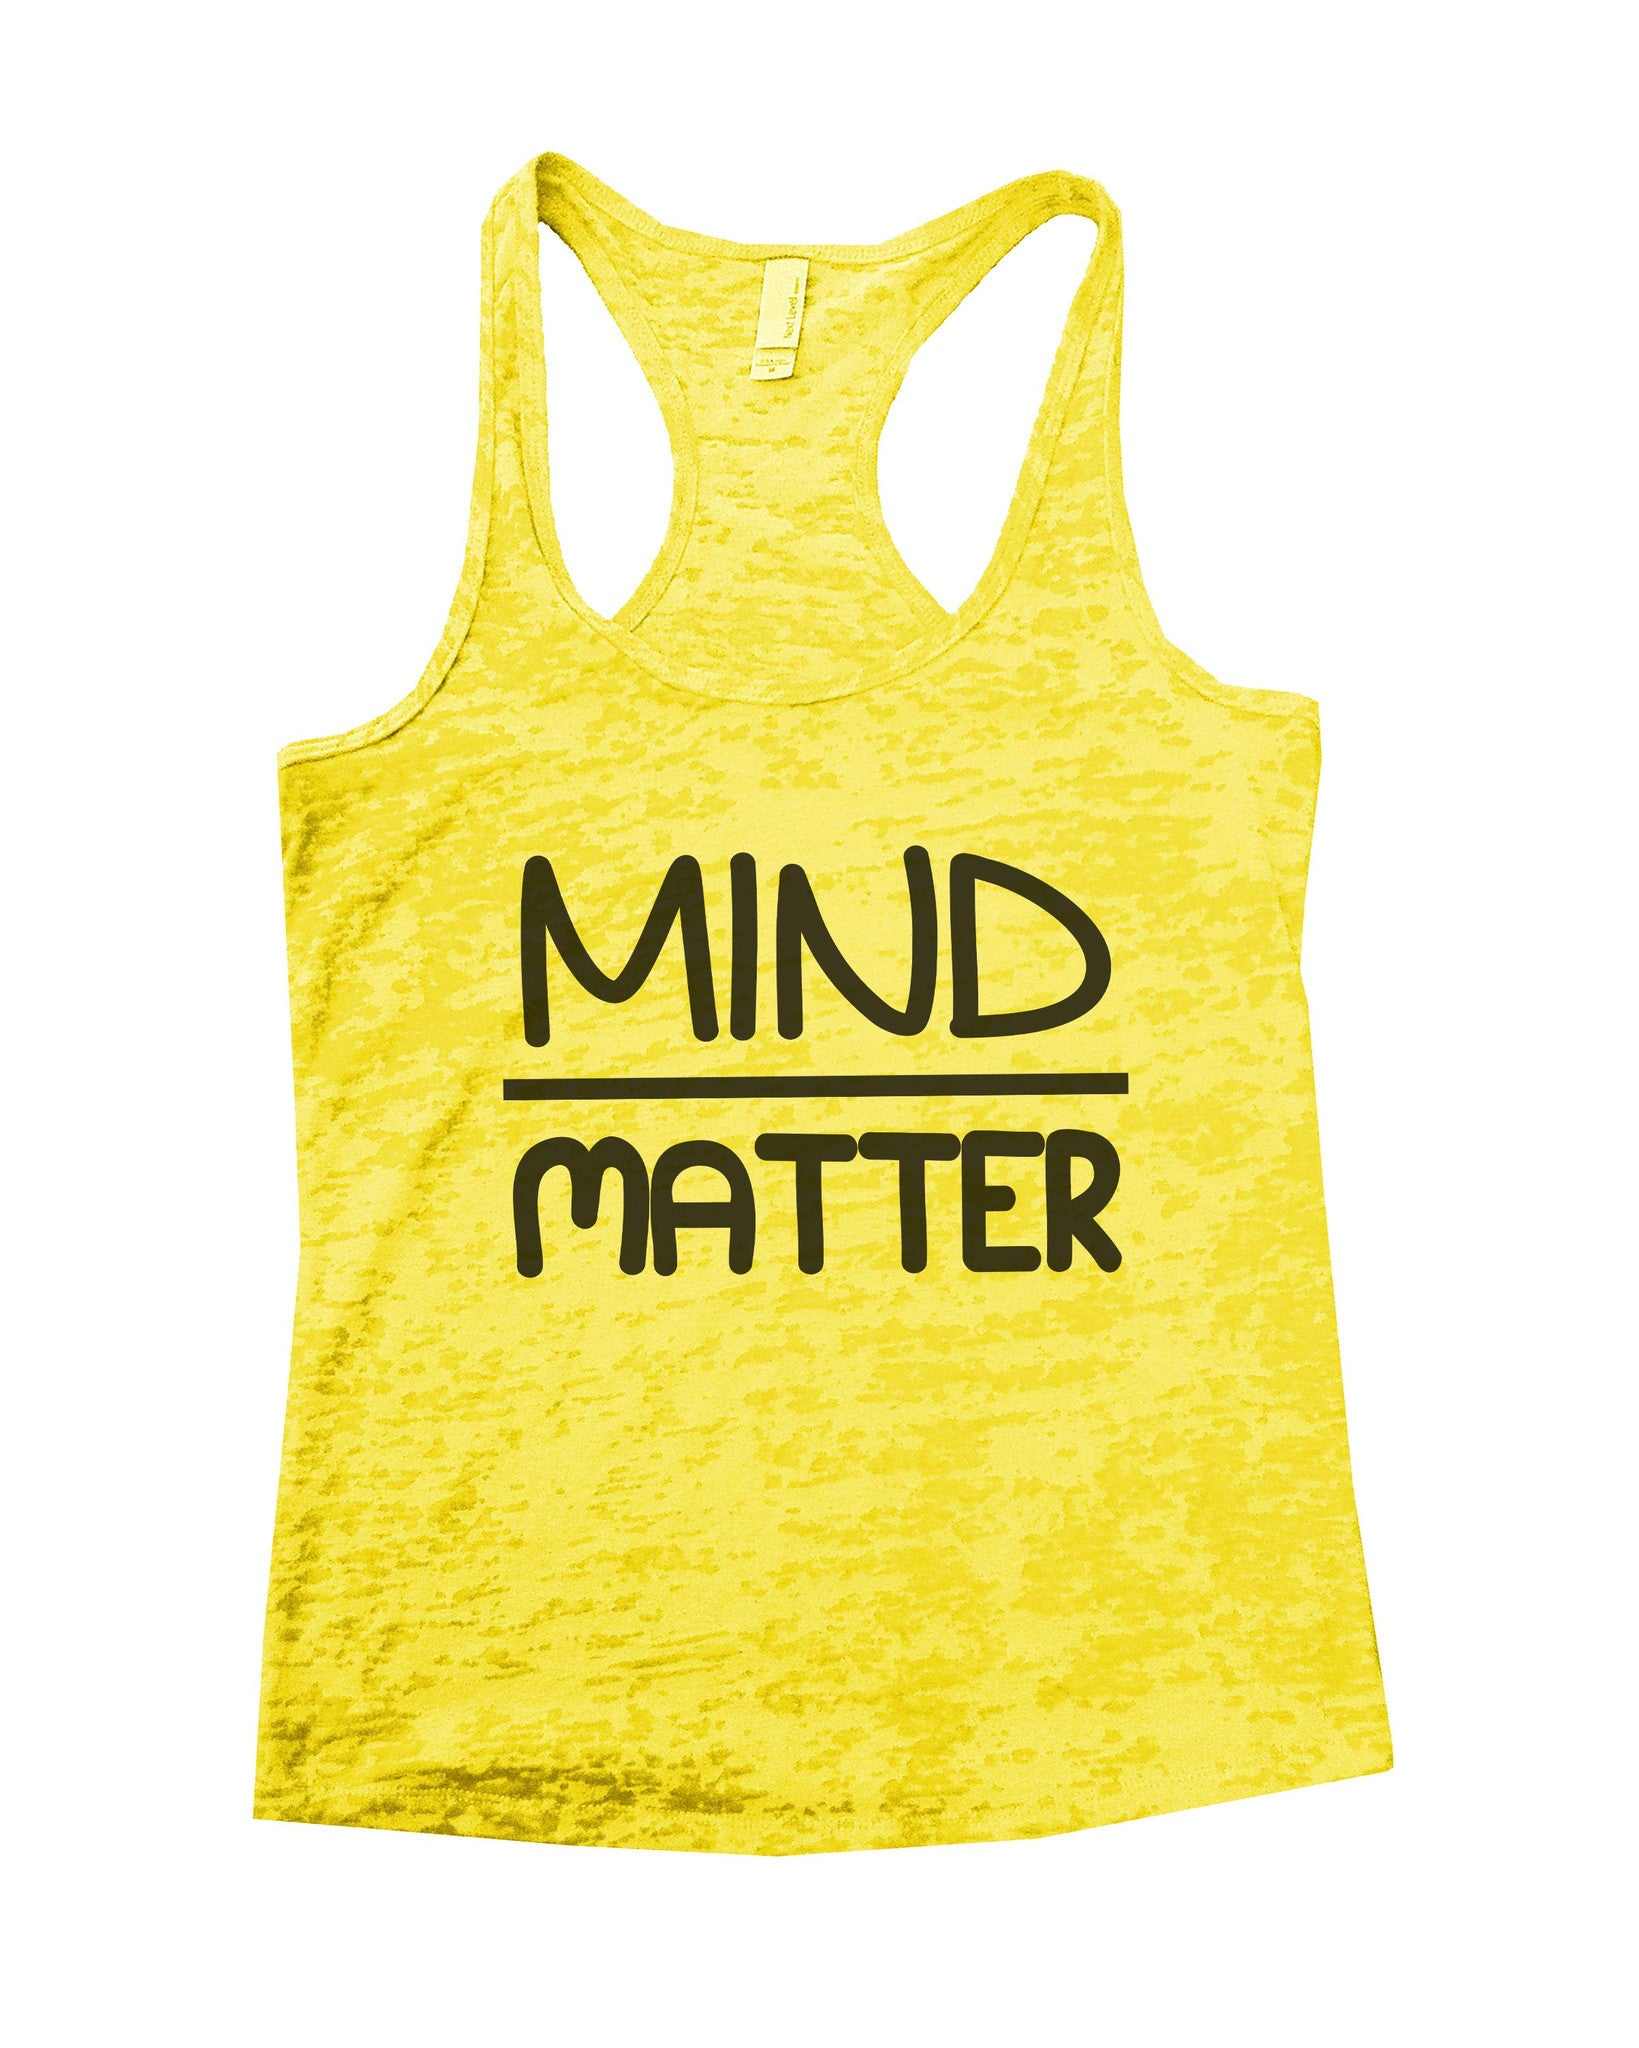 Mind Matter Burnout Tank Top By BurnoutTankTops.com - 655 - Funny Shirts Tank Tops Burnouts and Triblends  - 6